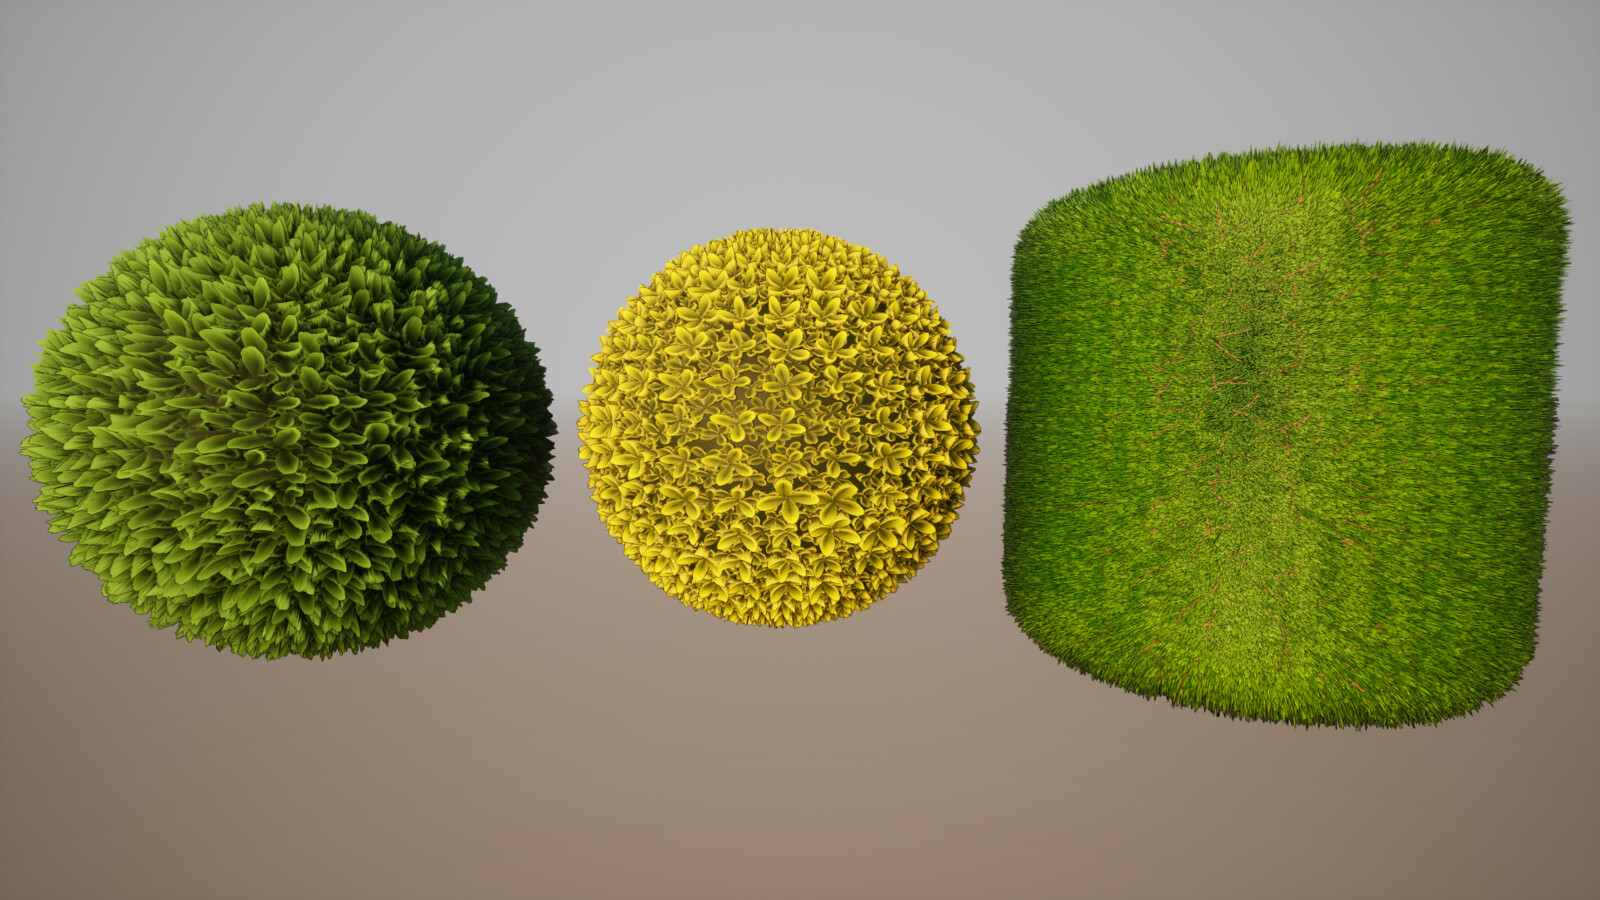 Tree Leaves, Bush, and Grass 2K Tiling Materials